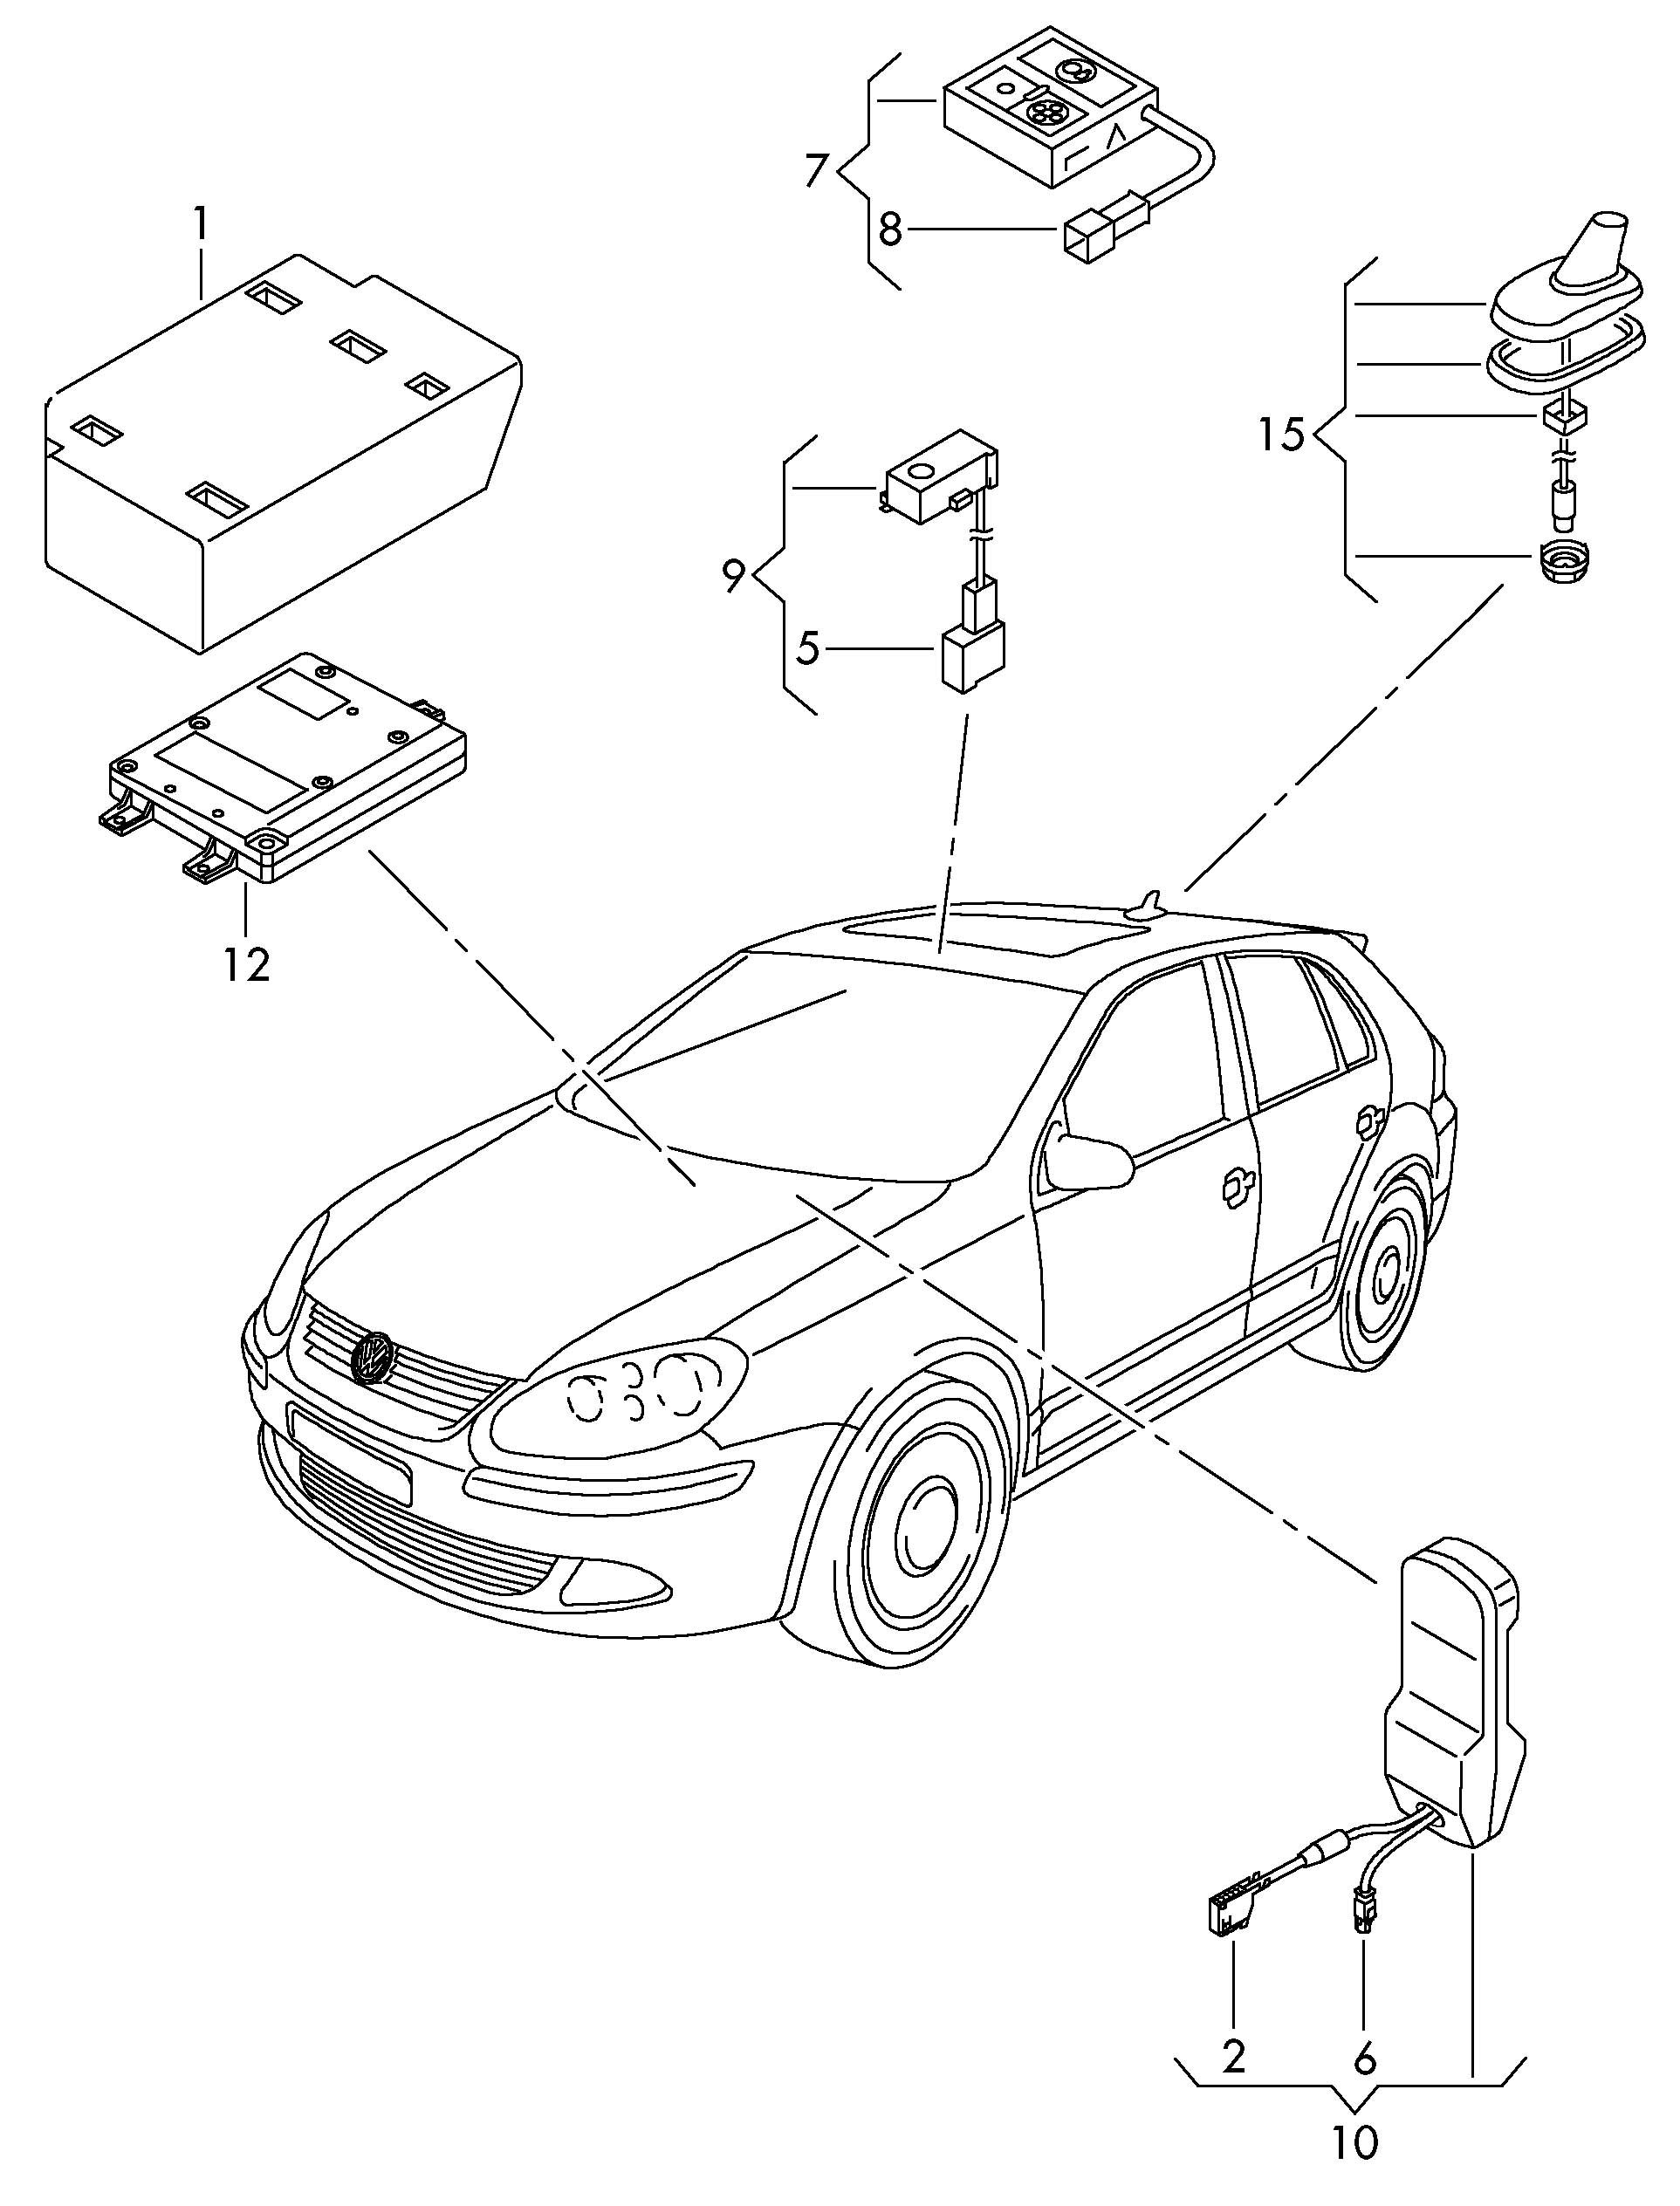 Volkswagen Golf Electrical Parts For Phone Preperation